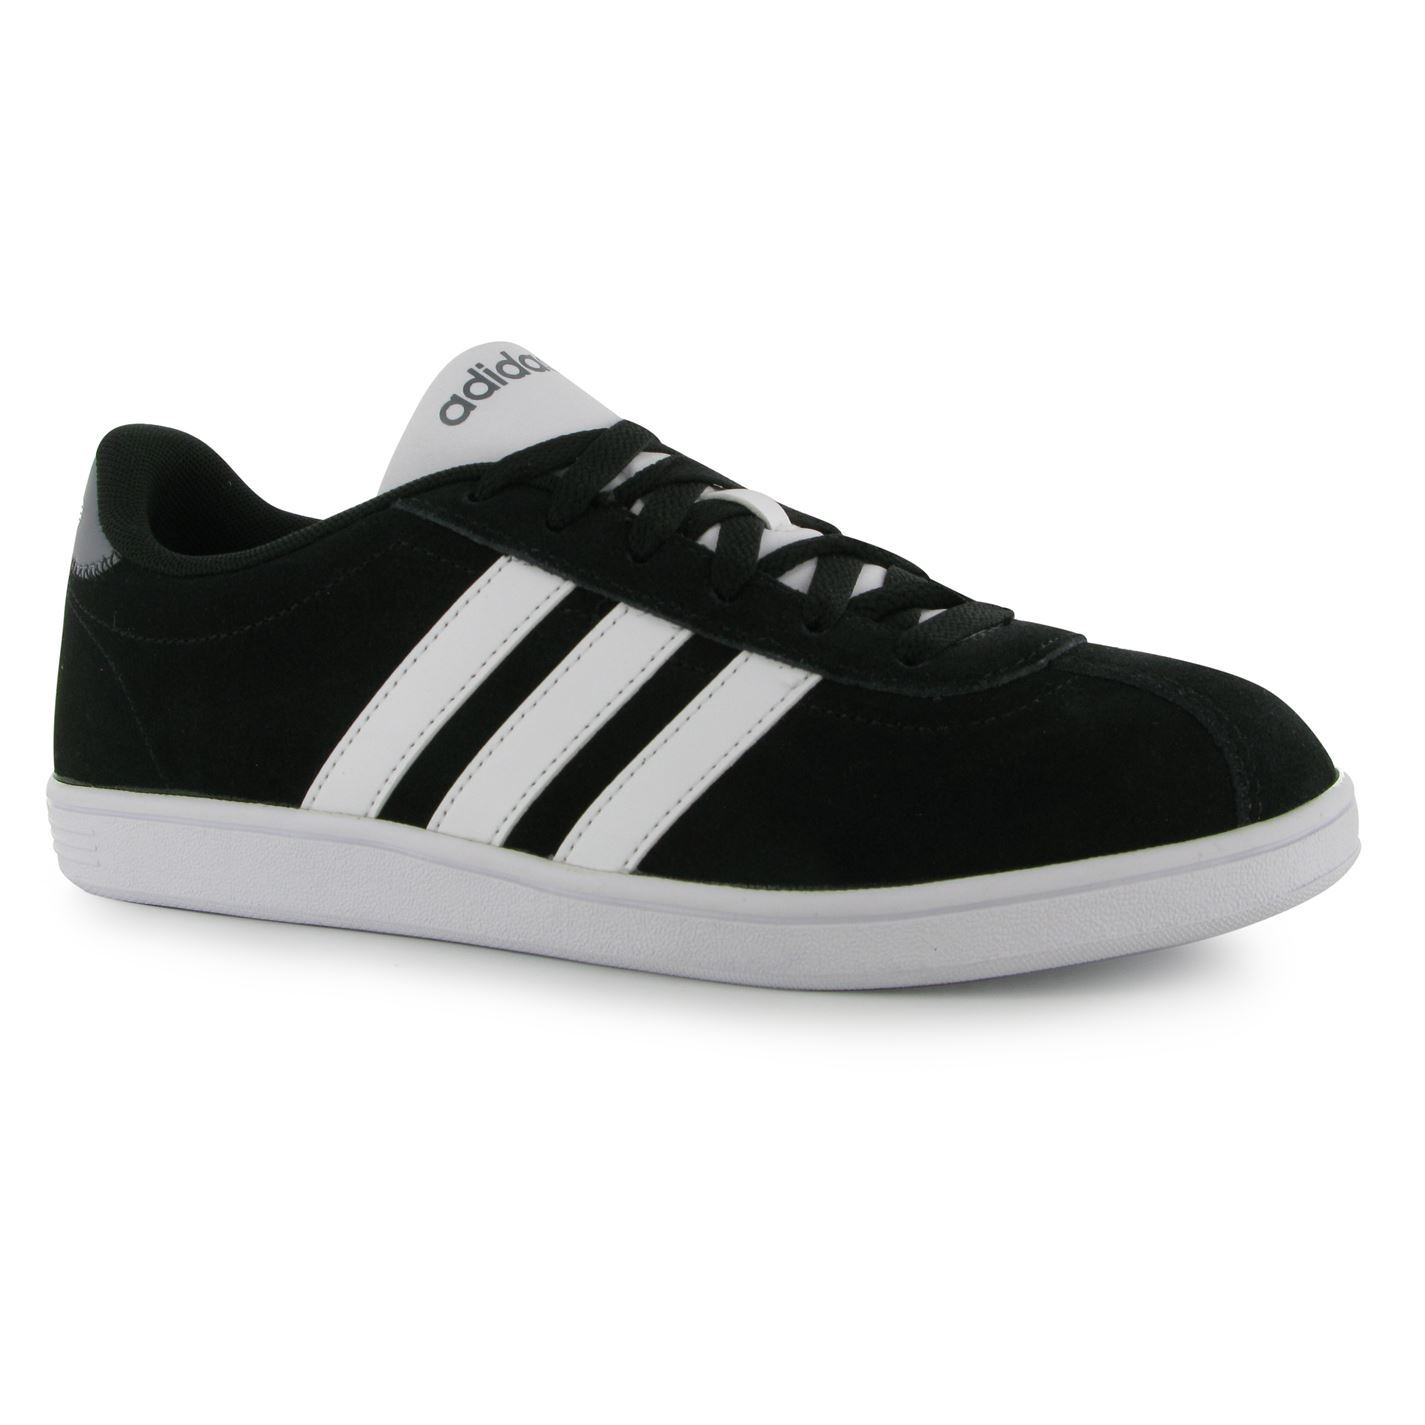 610f97a67234a Adidas Neo Shoes Ebay kenmore-cleaning.co.uk